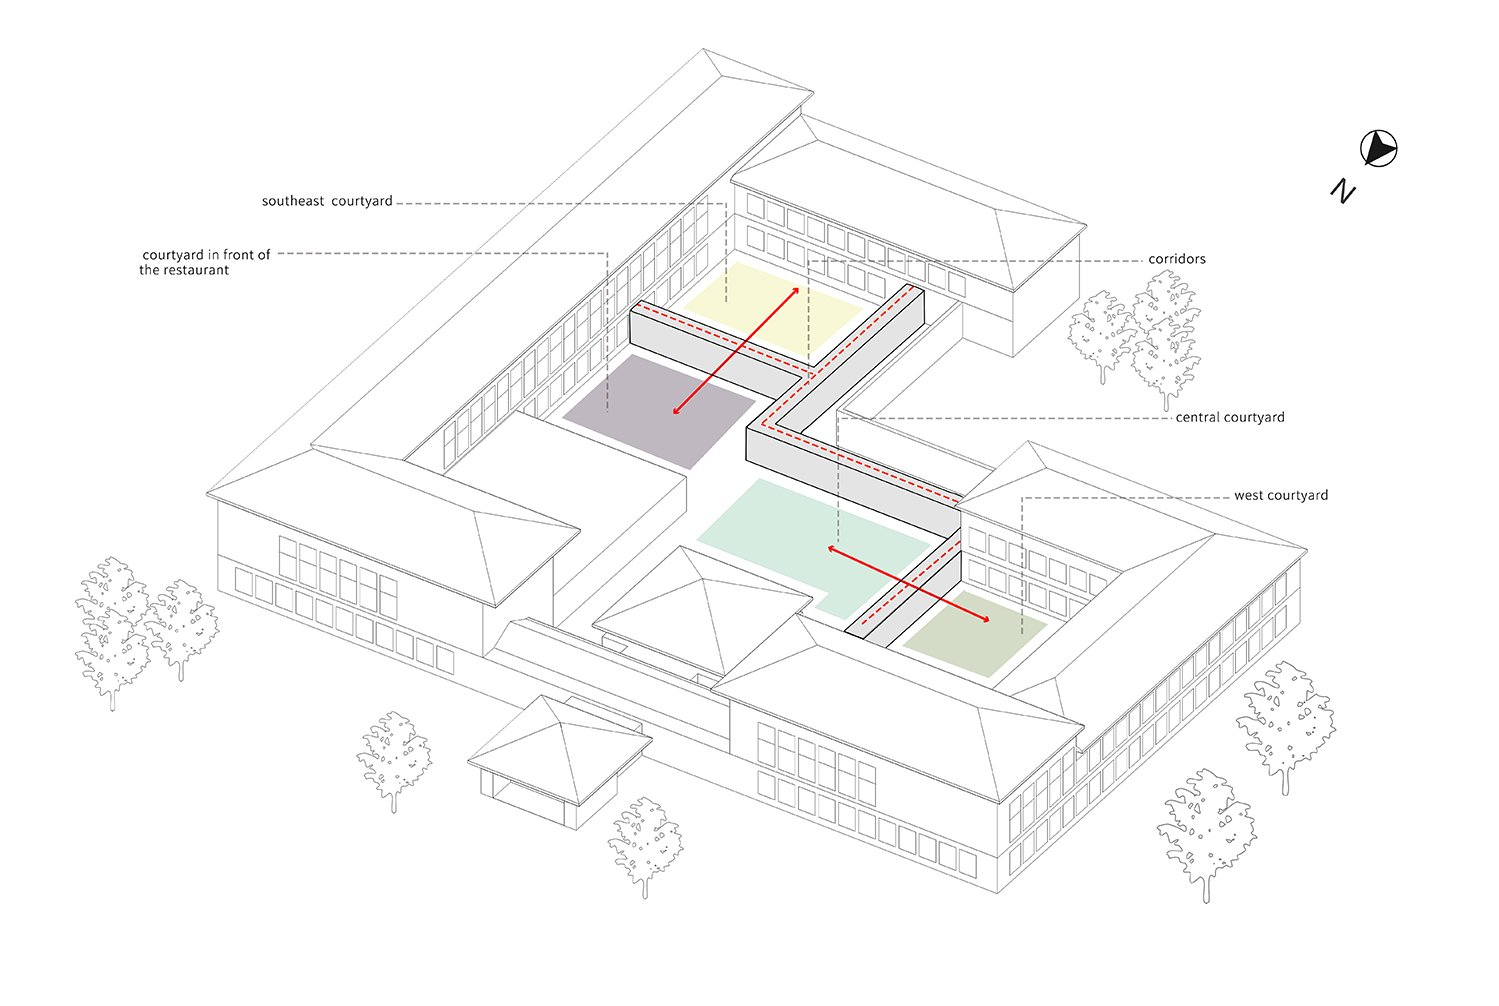 Countryard space analysis The Architectural Design & Research Institute of Zhejiang University}